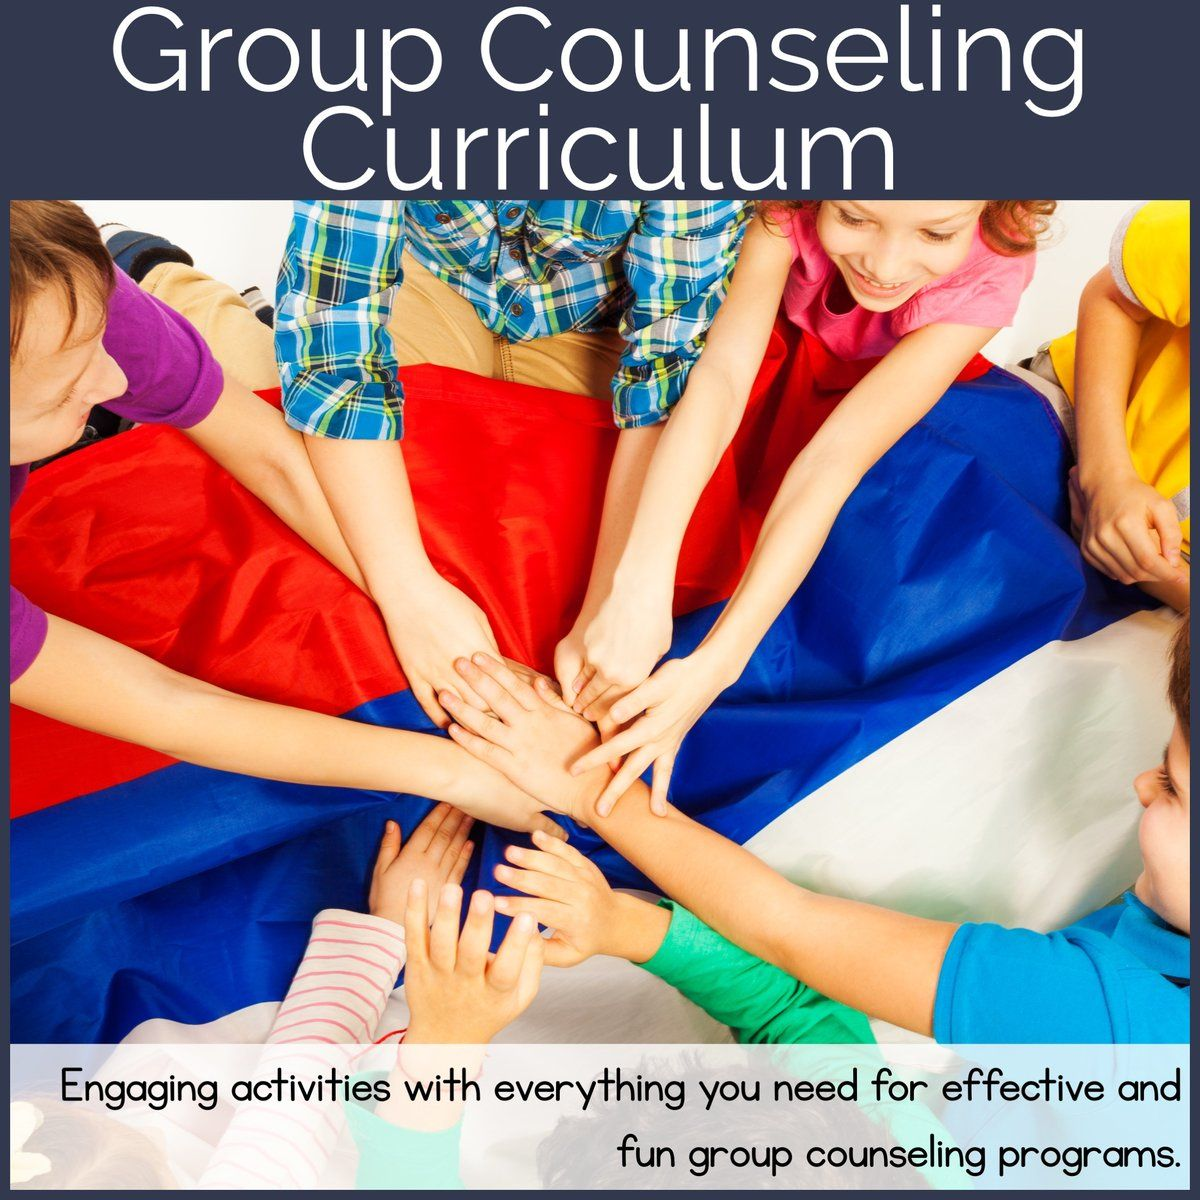 Complete Structured Group Counseling Programs To Meet A